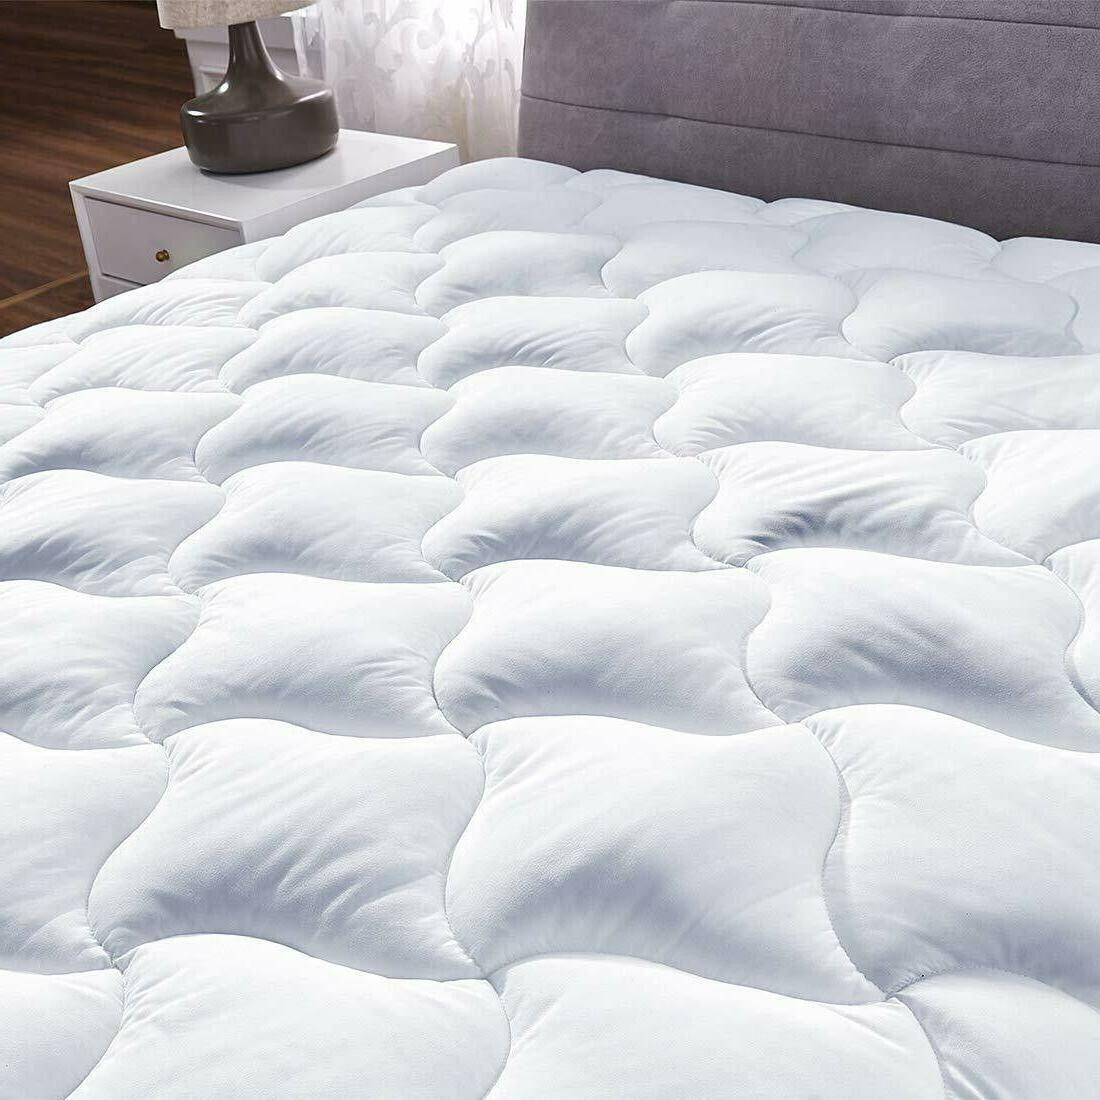 Queen Cover Down Pillow Top Topper Luxury Bed